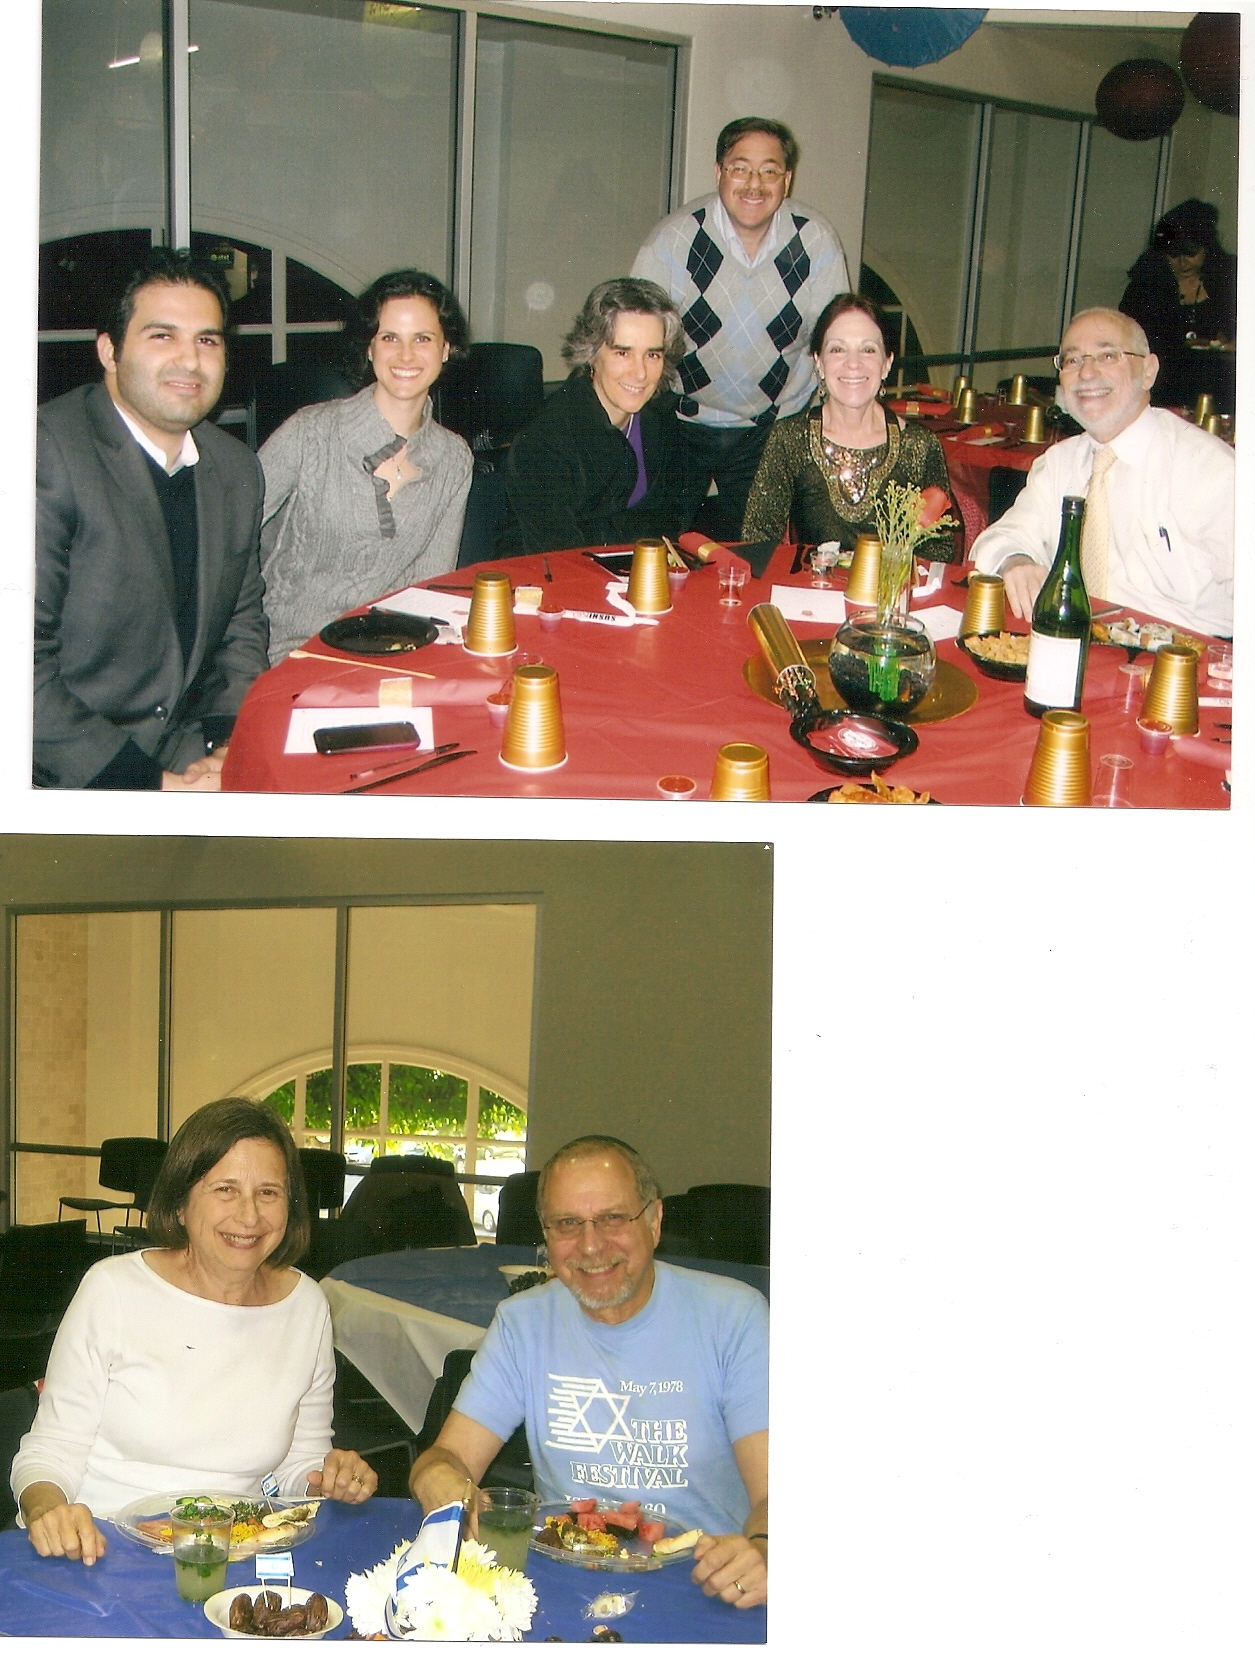 Shul events pics.jpg